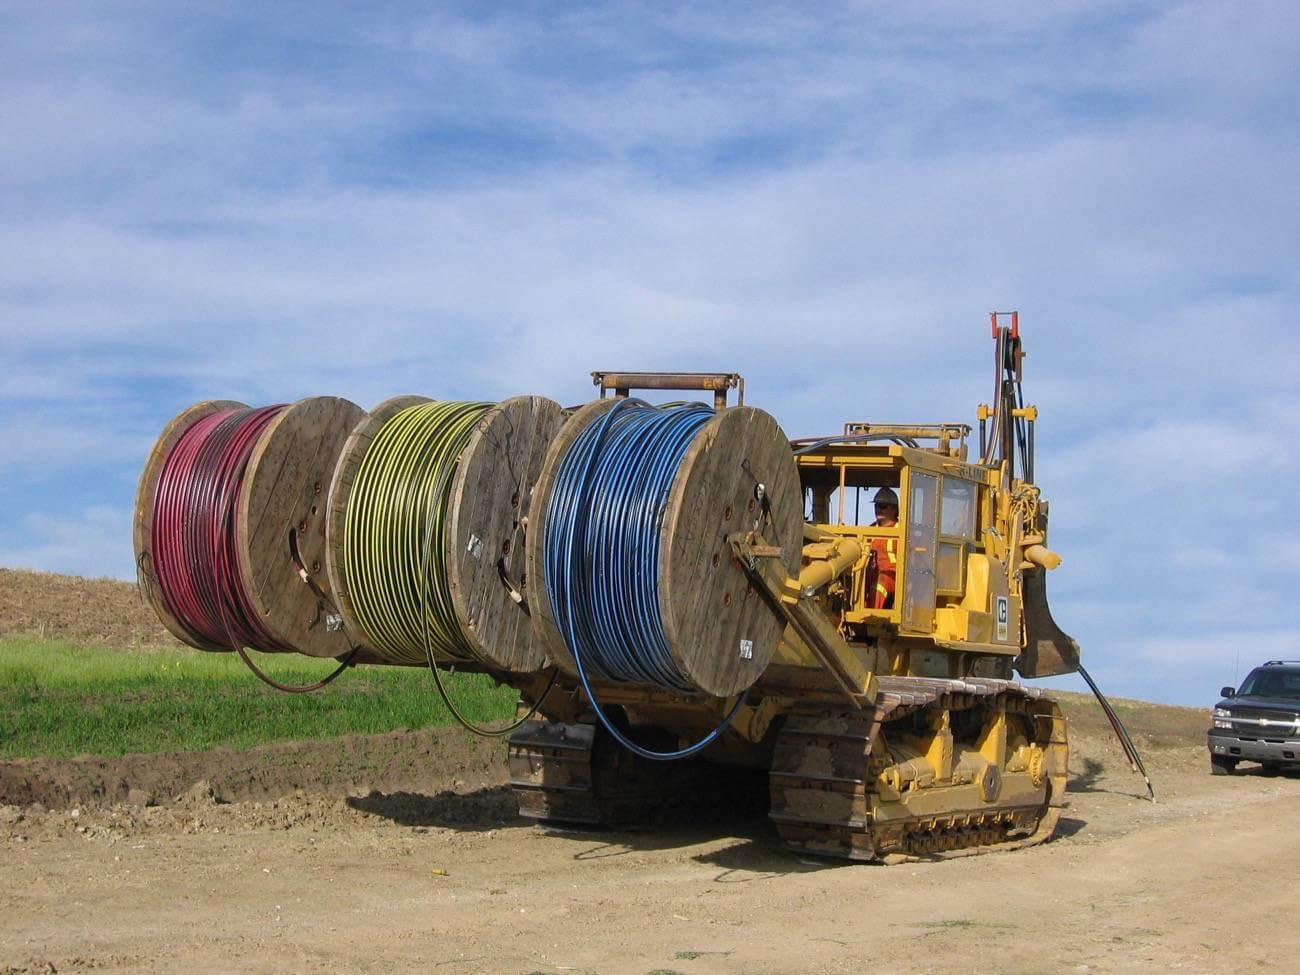 Cable tractor carrying 3 underground cable spools